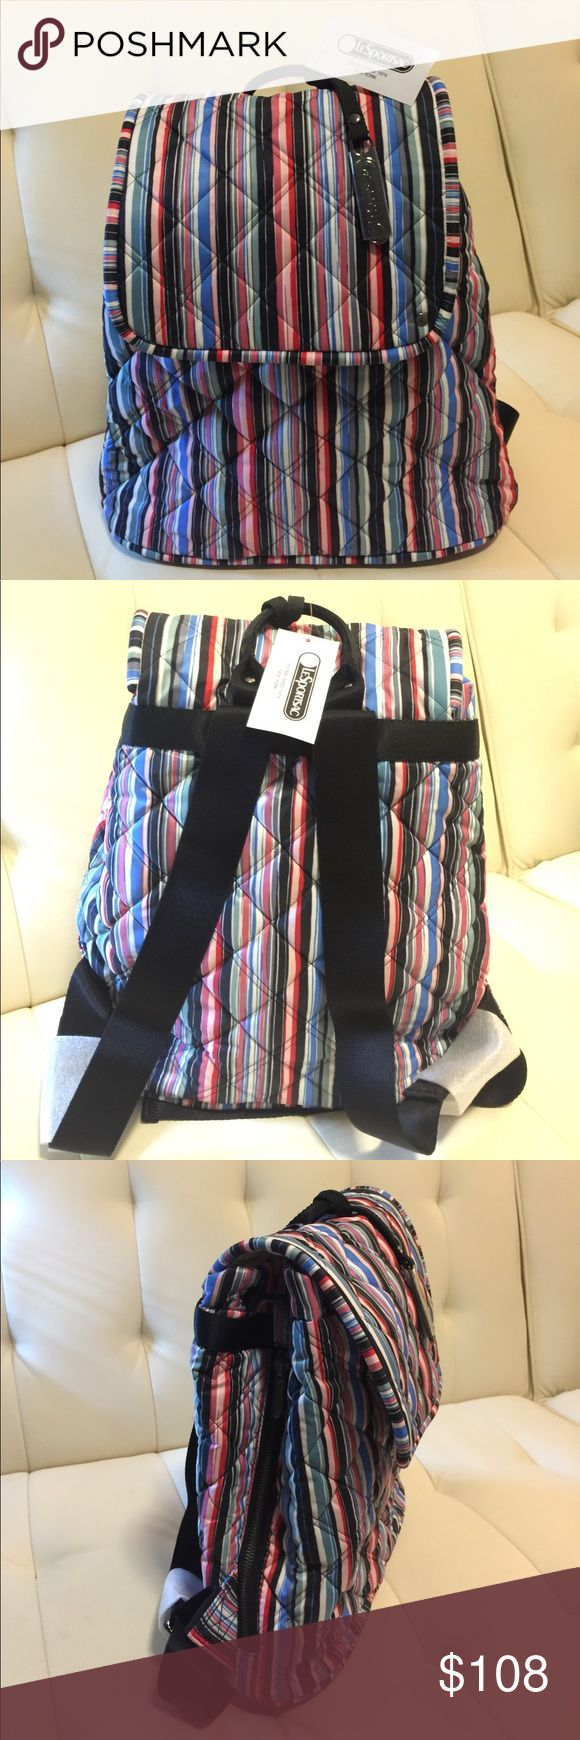 "NWT LeSportsac Beverly Stripe Quilted backpack 🎒 NWT LeSportsac Beverly Stripe Quilted backpack 🎒Watercolor Stripe 13"" H x 12.5"" W x 4.5"" D LeSportsac Bags Backpacks"